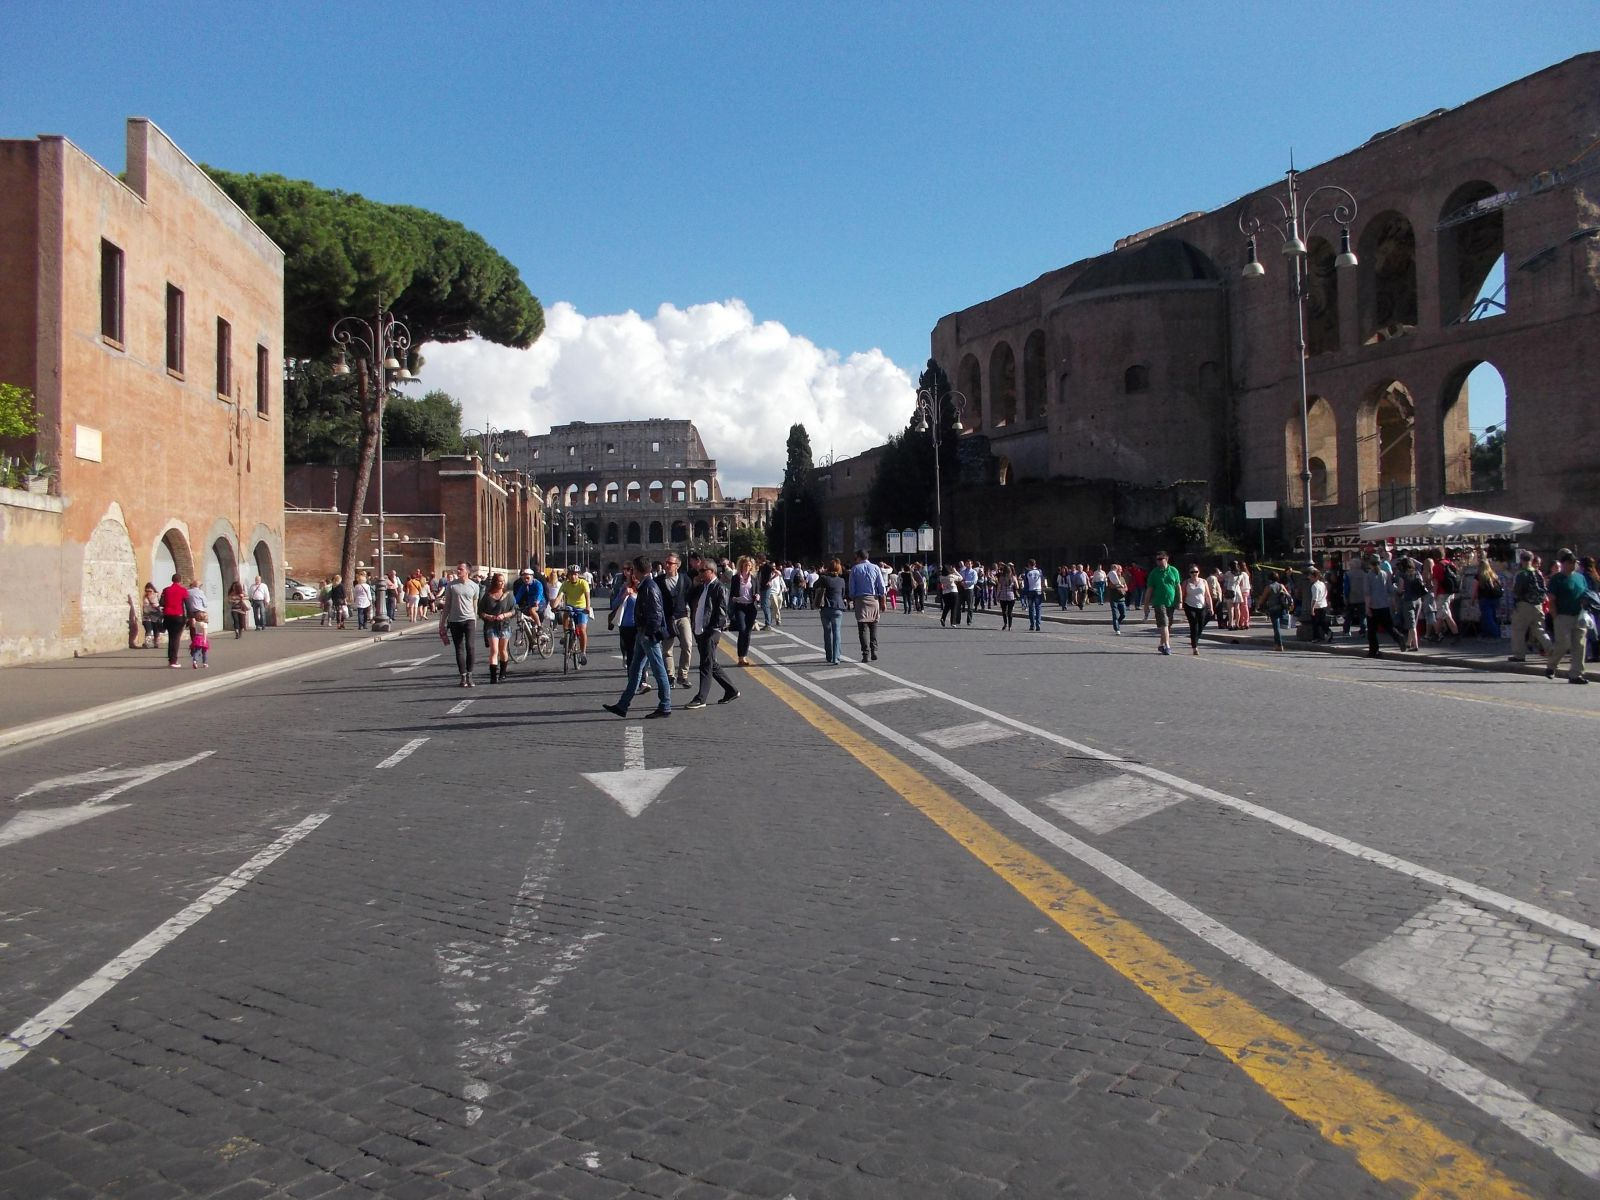 Via dei Fori Imperiali, free of congestion on a pedestrians-only Sunday